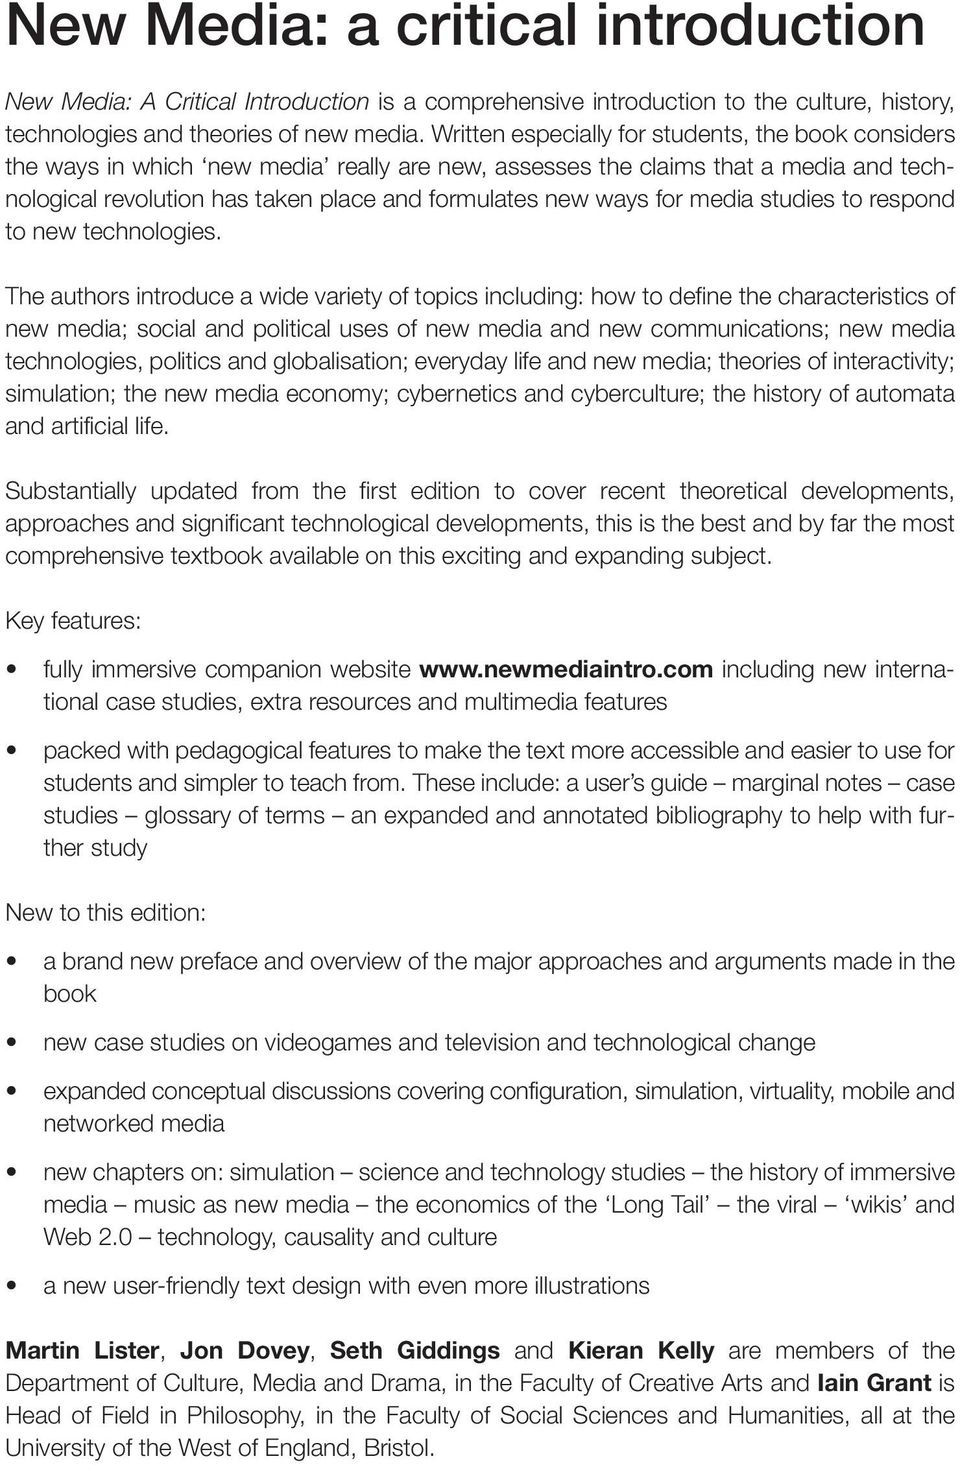 New media a critical introduction pdf for media studies to respond to new technologies fandeluxe Gallery